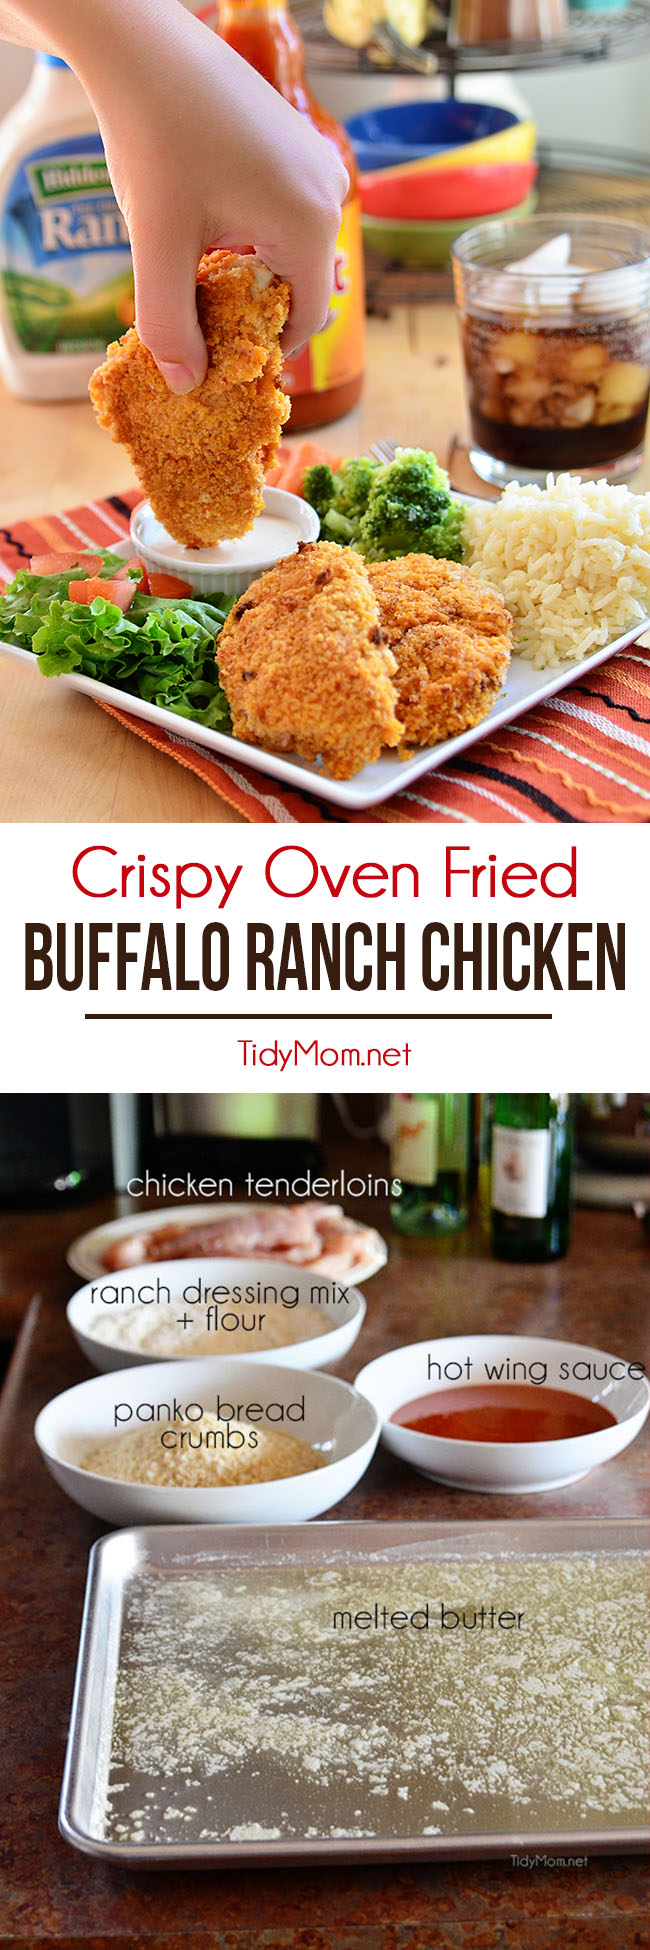 These crispy oven fried Buffalo Ranch Chicken strips are crisp-crusted moist and tender fiery buffalo sauce slathered where's the ranch dip chicken fingers. Get the recipe at TidyMom.net #buffalochicken #ranch #chicken #chickendinner